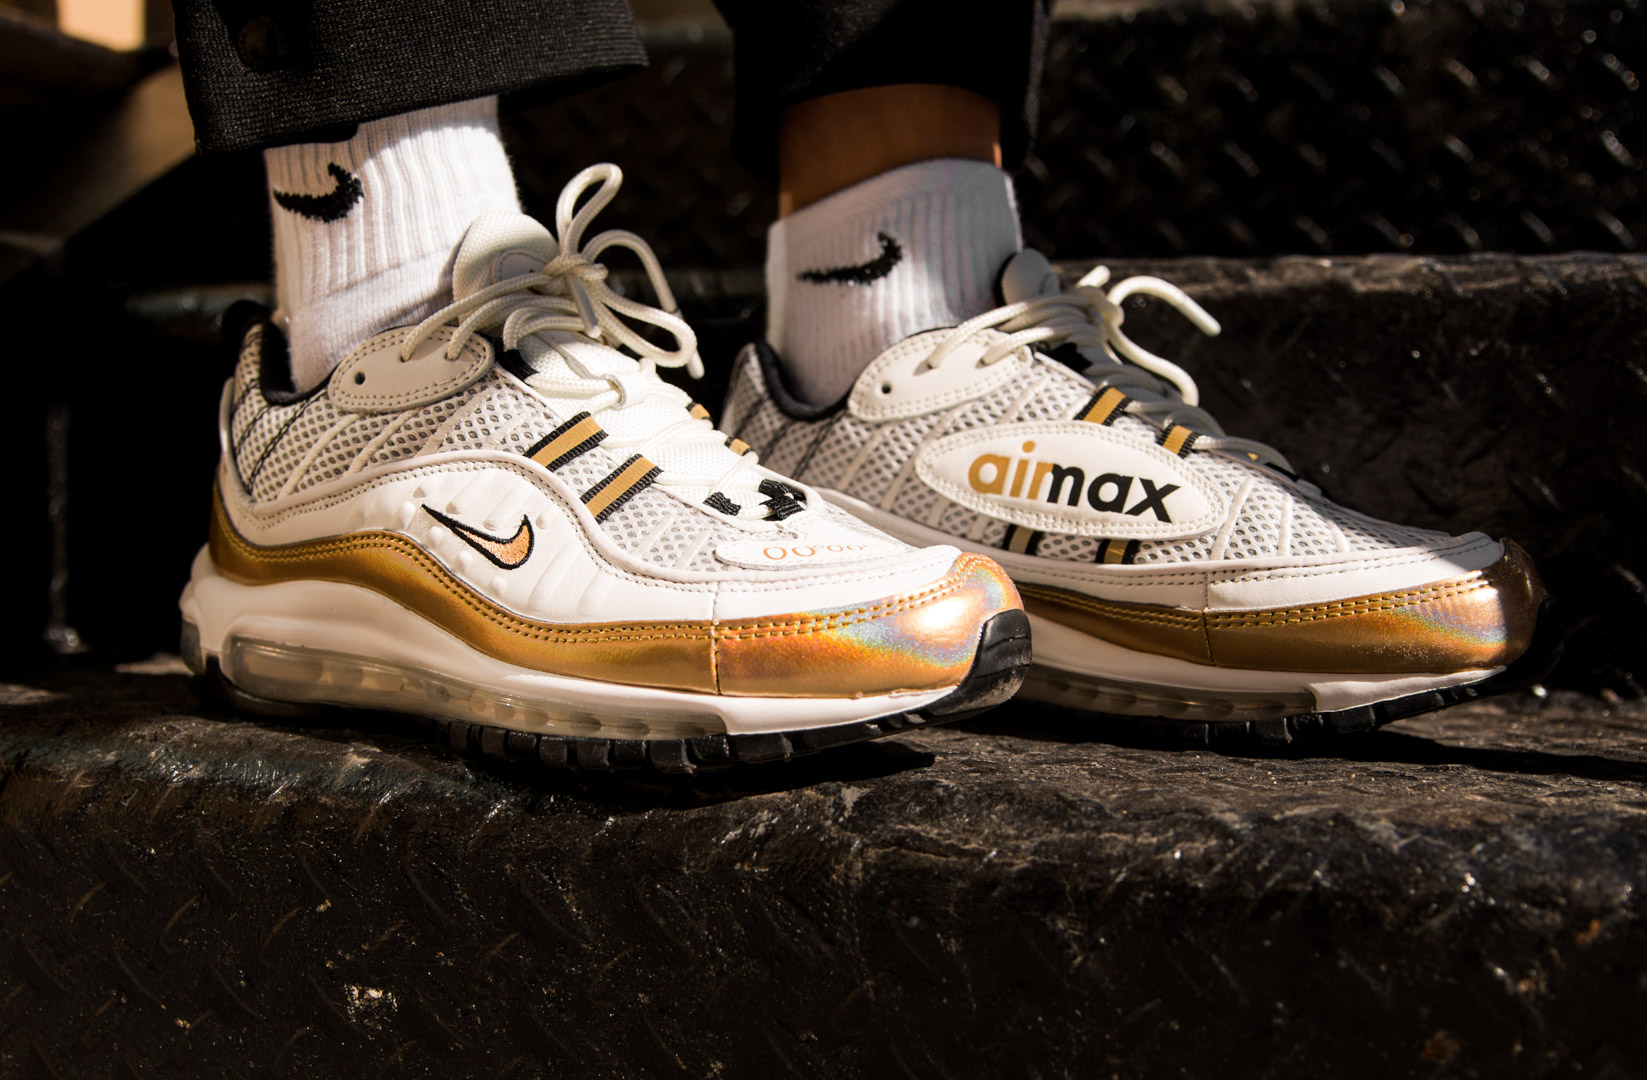 Celebrating Air Max Day With The Air Max 98